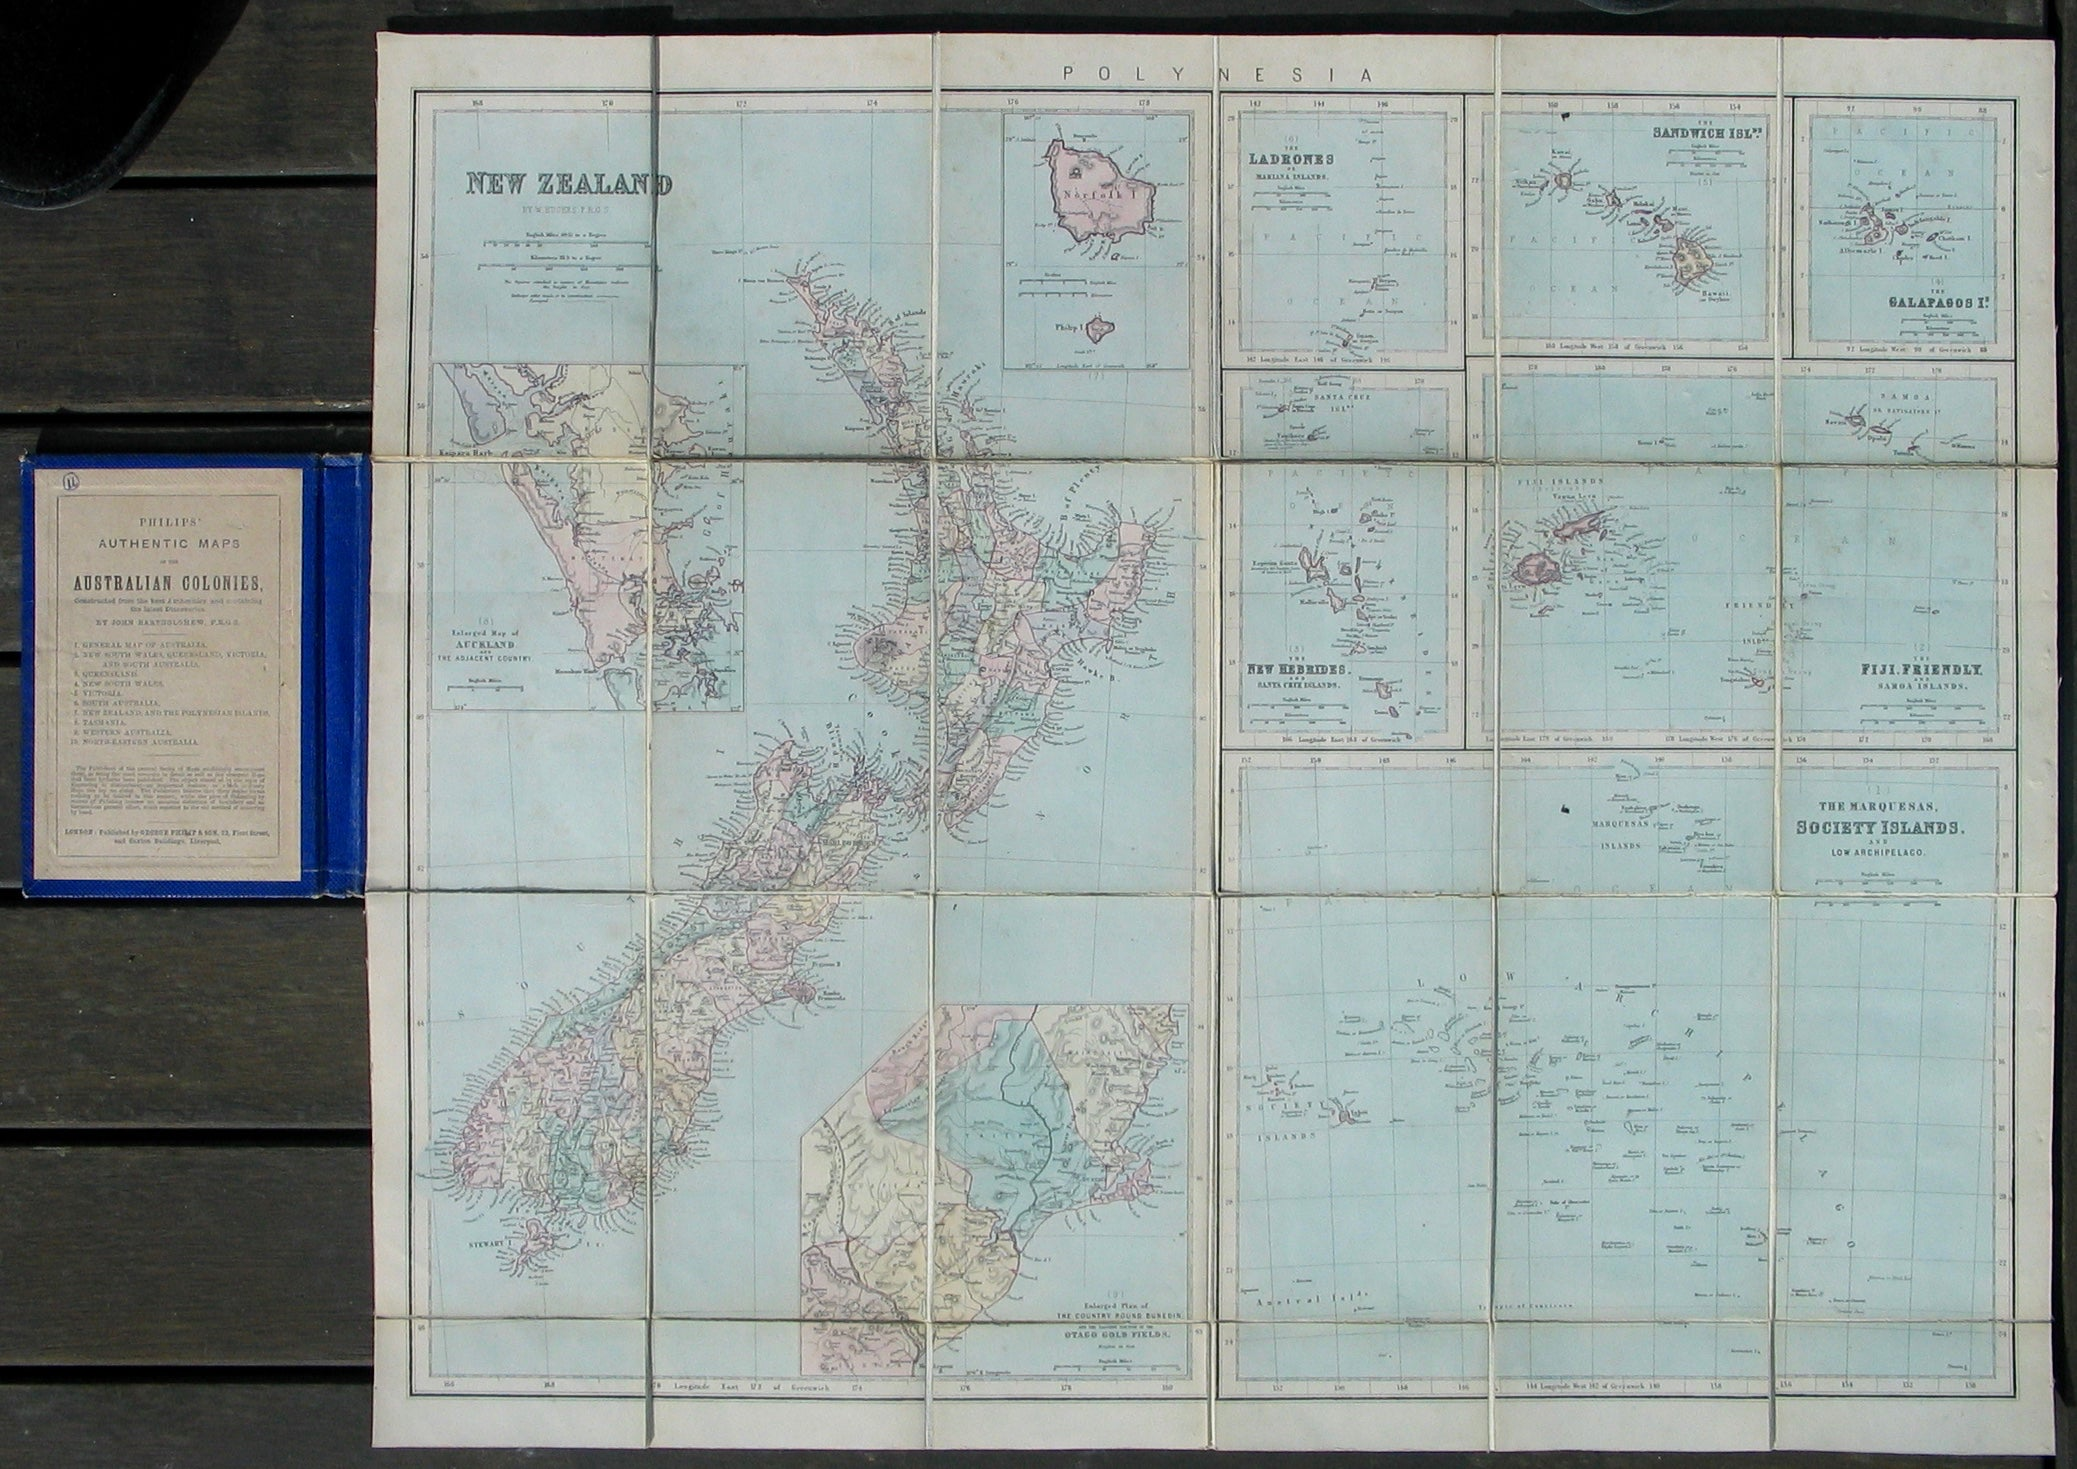 New Zealand and the Island Groups of the Pacific